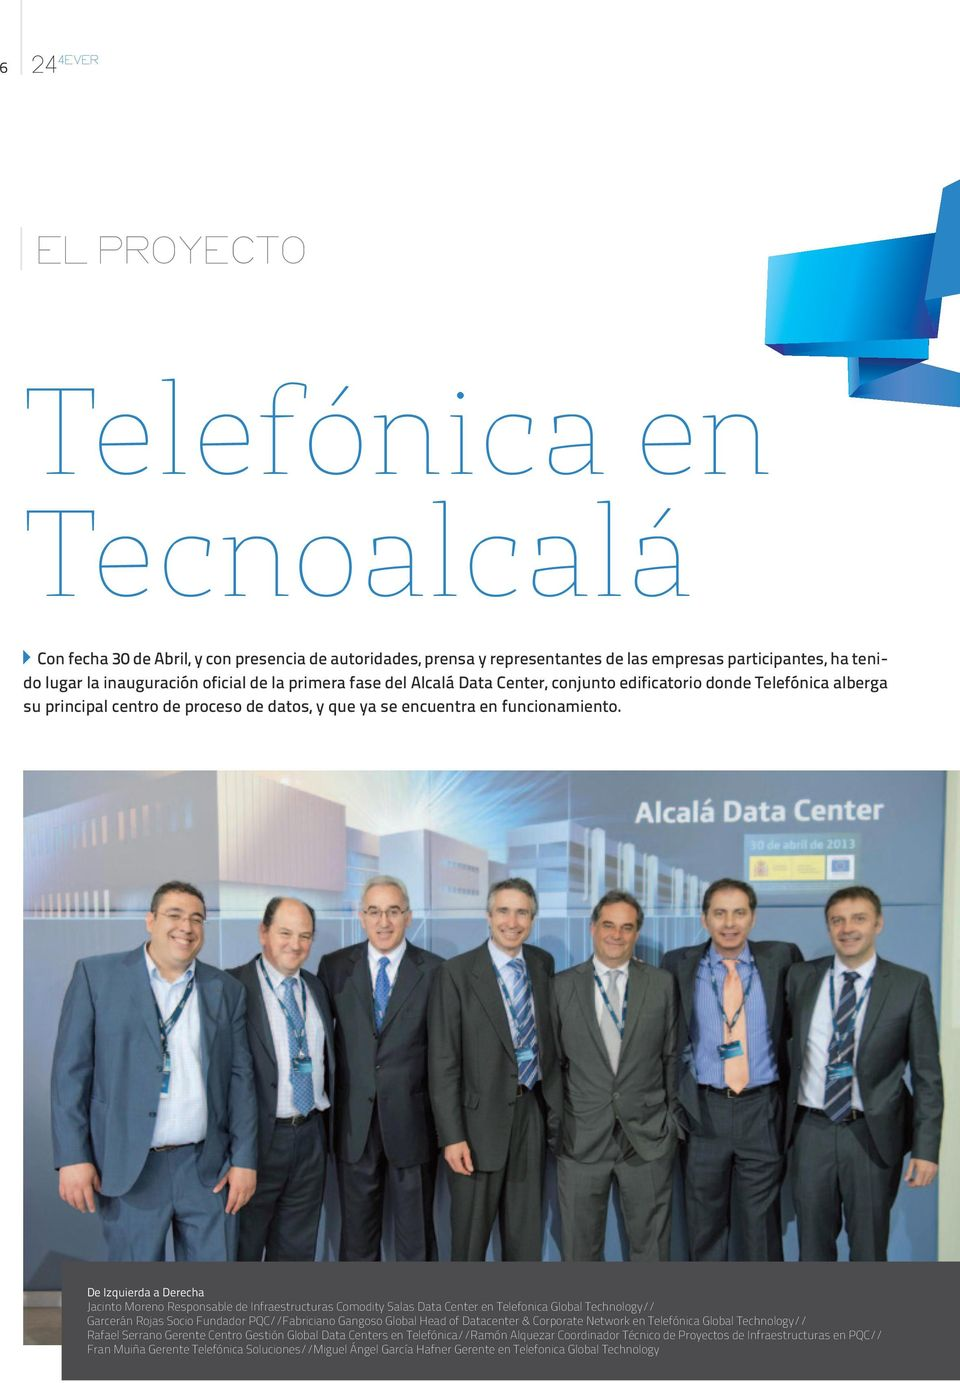 De Izquierda a Derecha Jacinto Moreno Responsable de Infraestructuras Comodity Salas Data Center en Telefonica Global Technology// Garcerán Rojas Socio Fundador PQC//Fabriciano Gangoso Global Head of